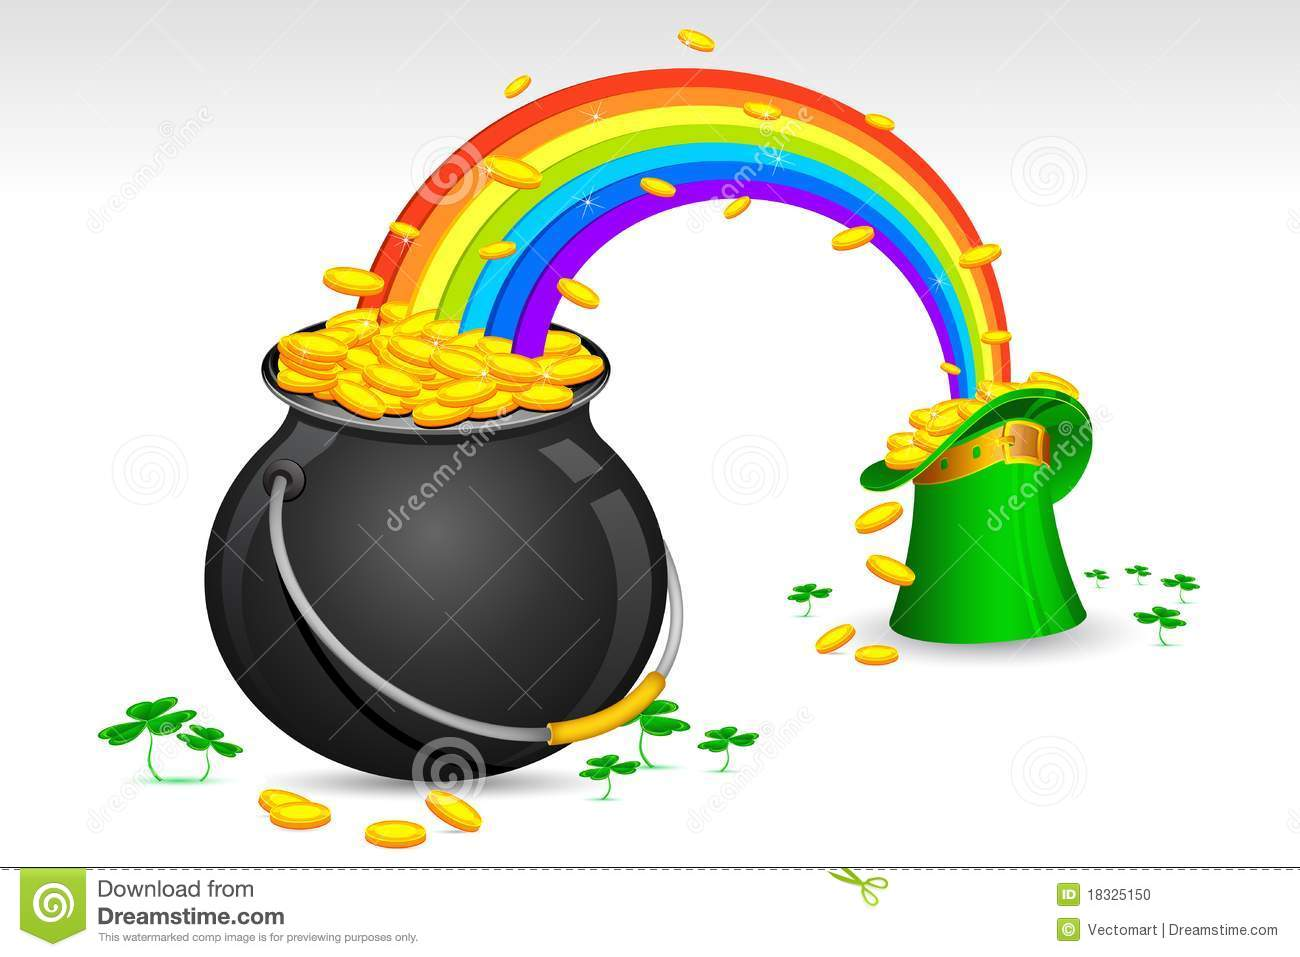 Illustration of Saint Patrick's hat and pot filled with gold coins.